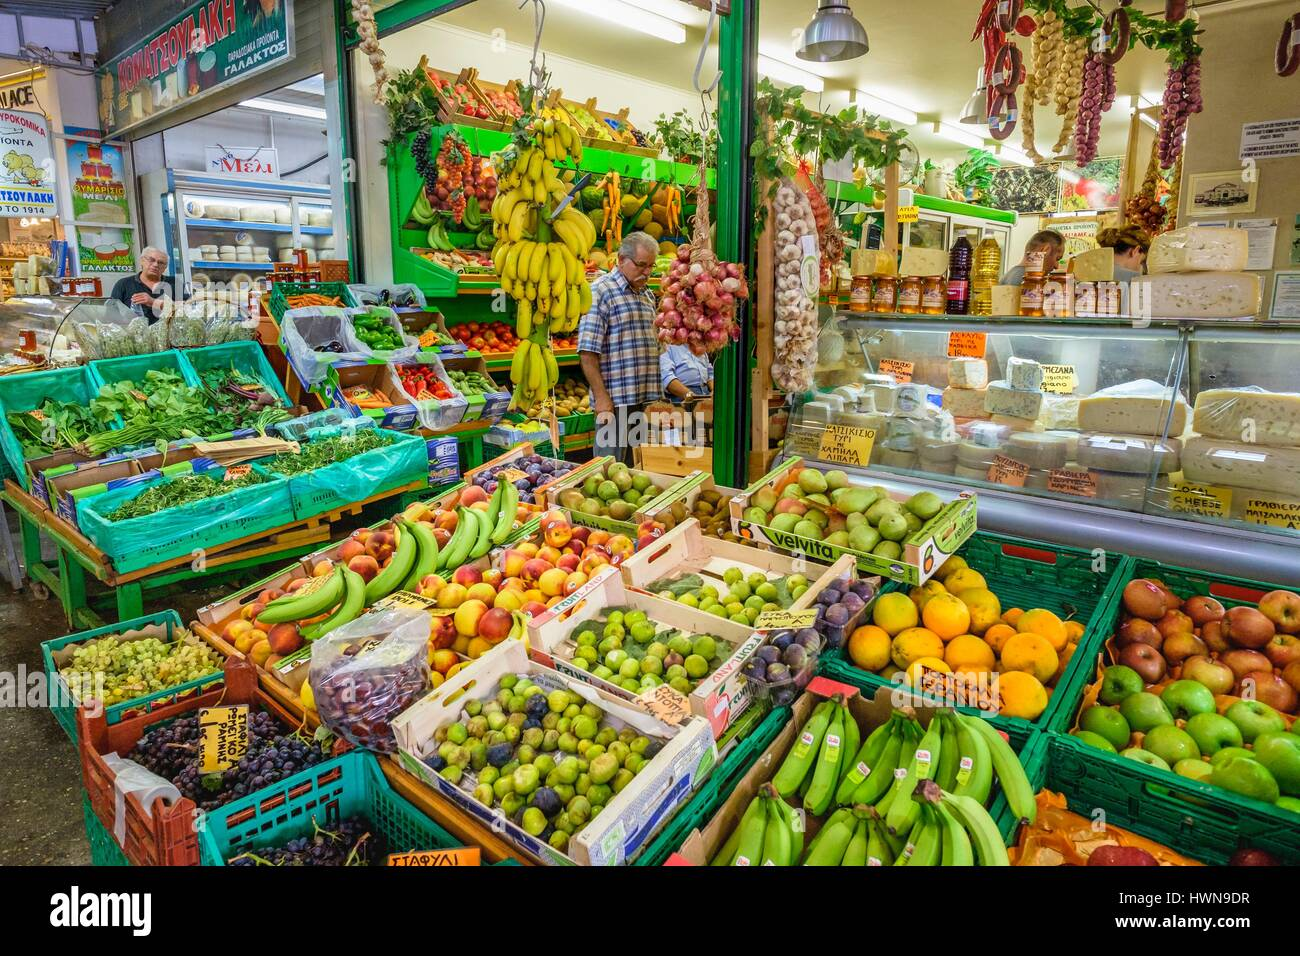 Greece, Crete, Chania, the great covered market inaugurated in 1913 - Stock Image